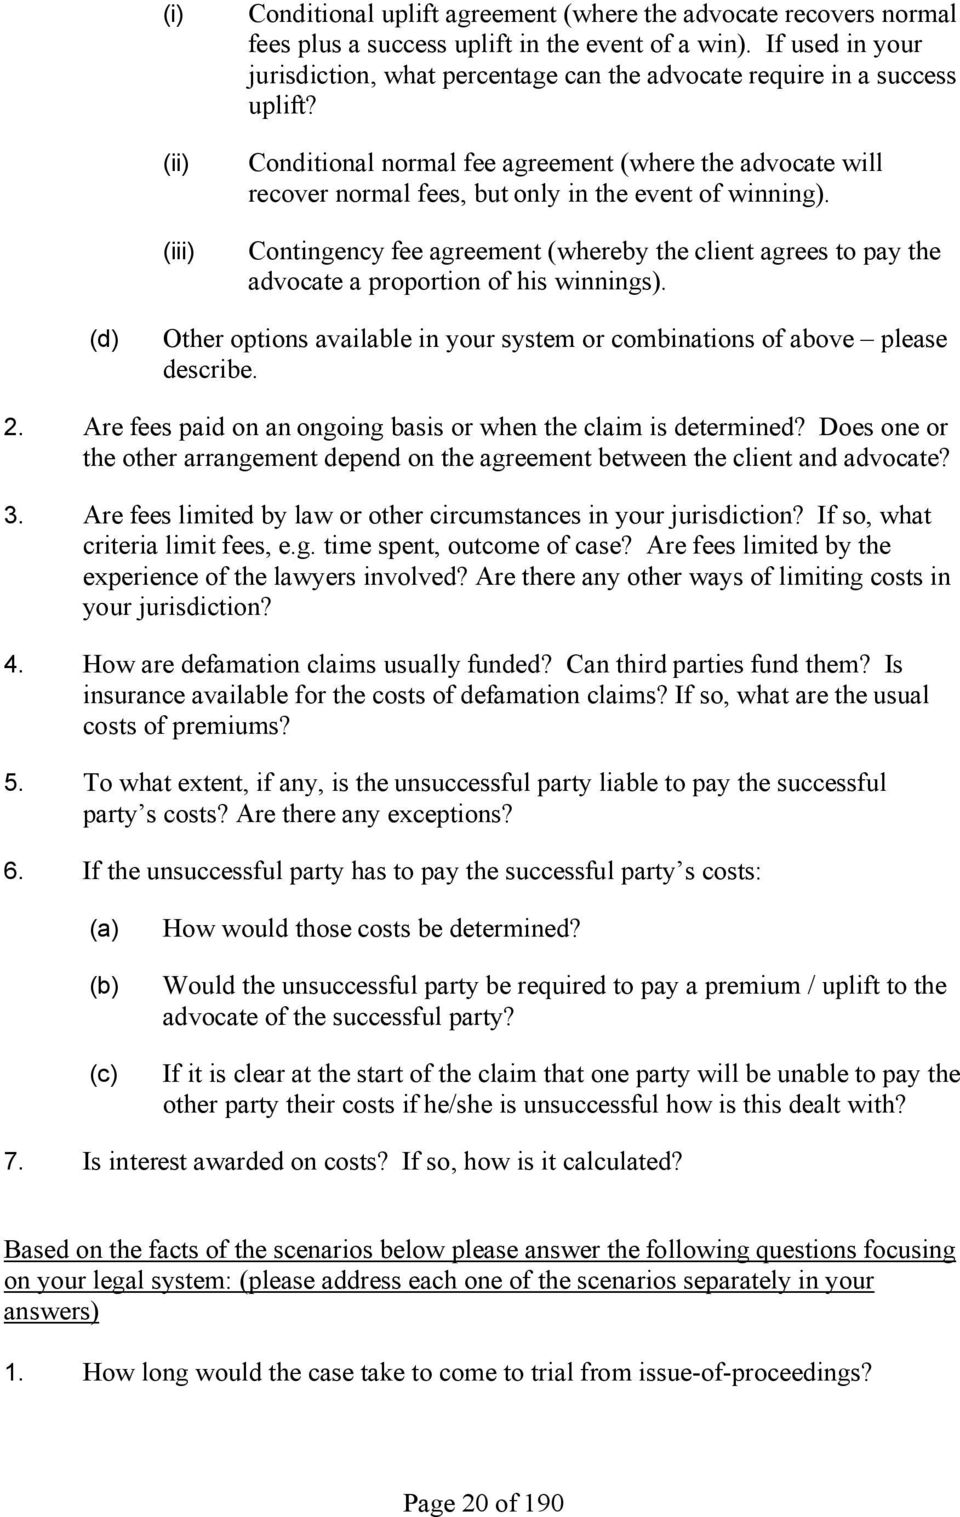 Conditional normal fee agreement (where the advocate will recover normal fees, but only in the event of winning).